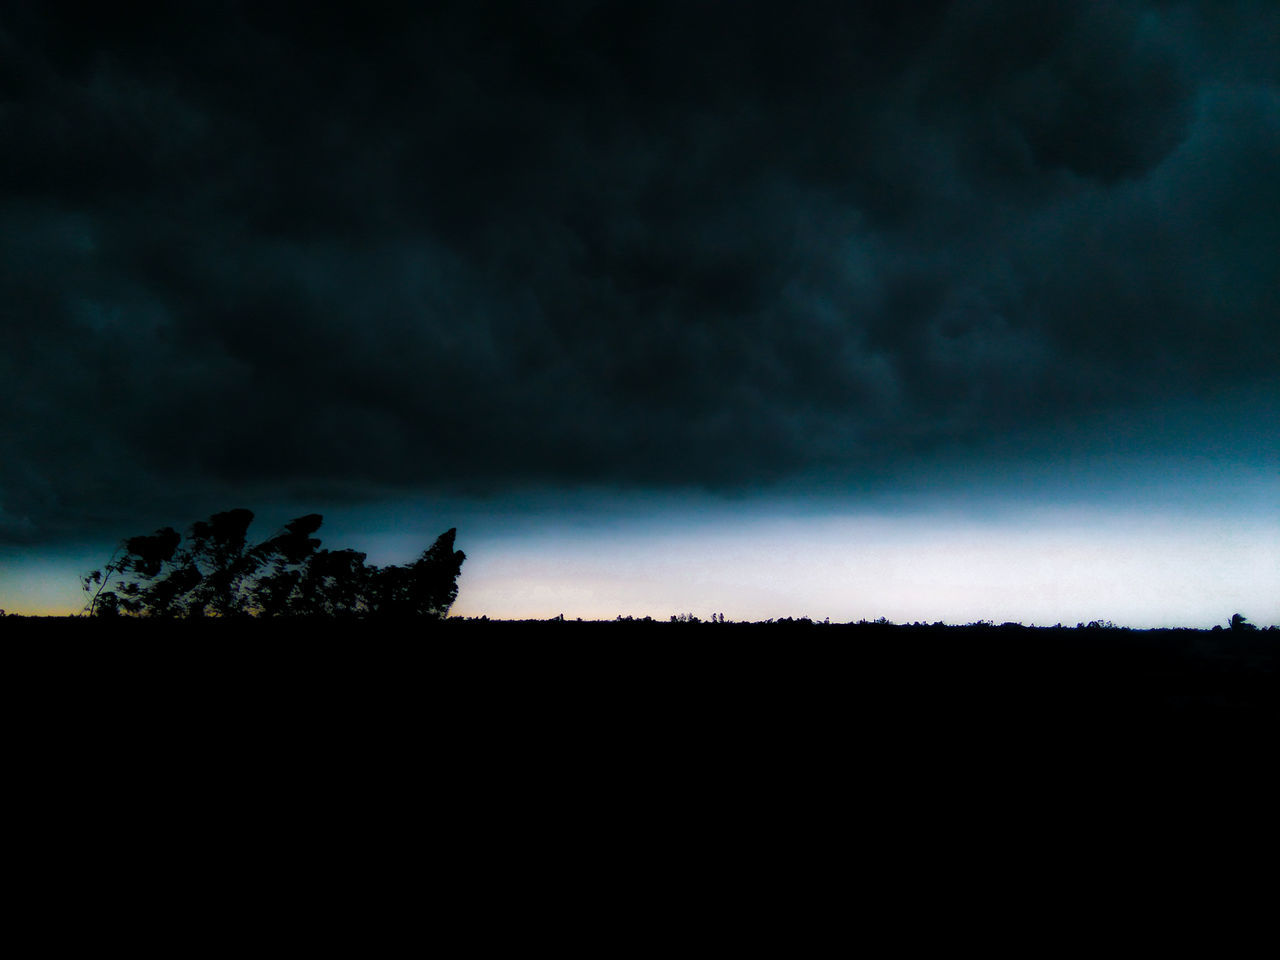 Tree Dark Nature Landscape No People Astronomy Sky Outdoors Tree Area Scenics Beauty In Nature Day Storm Mobile Photography Thunderstorm Rain Cloud Silhouette Night Star - Space